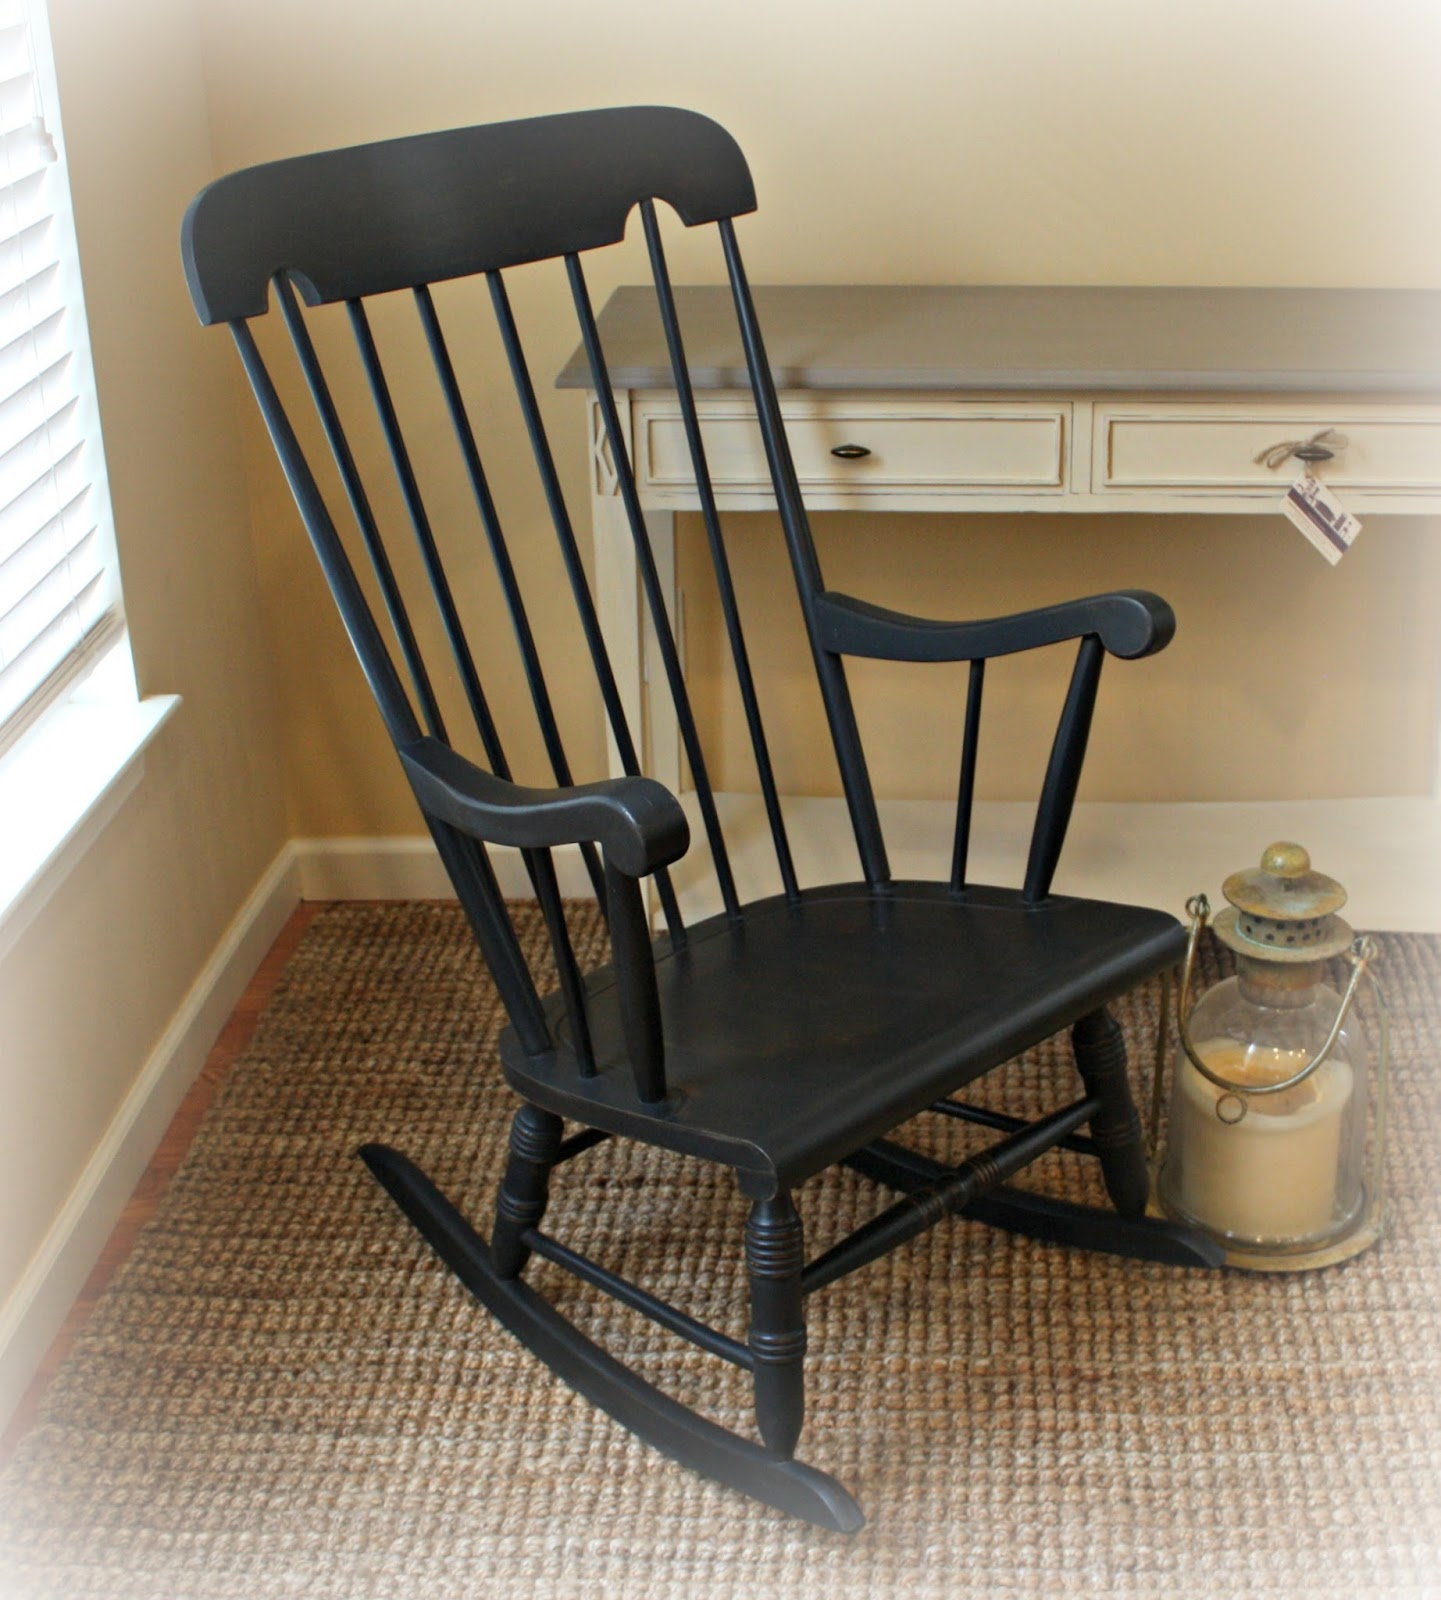 Looking For Rocking Chairs Vintage Rocking Chair With Damaged Finish Gets A New Look